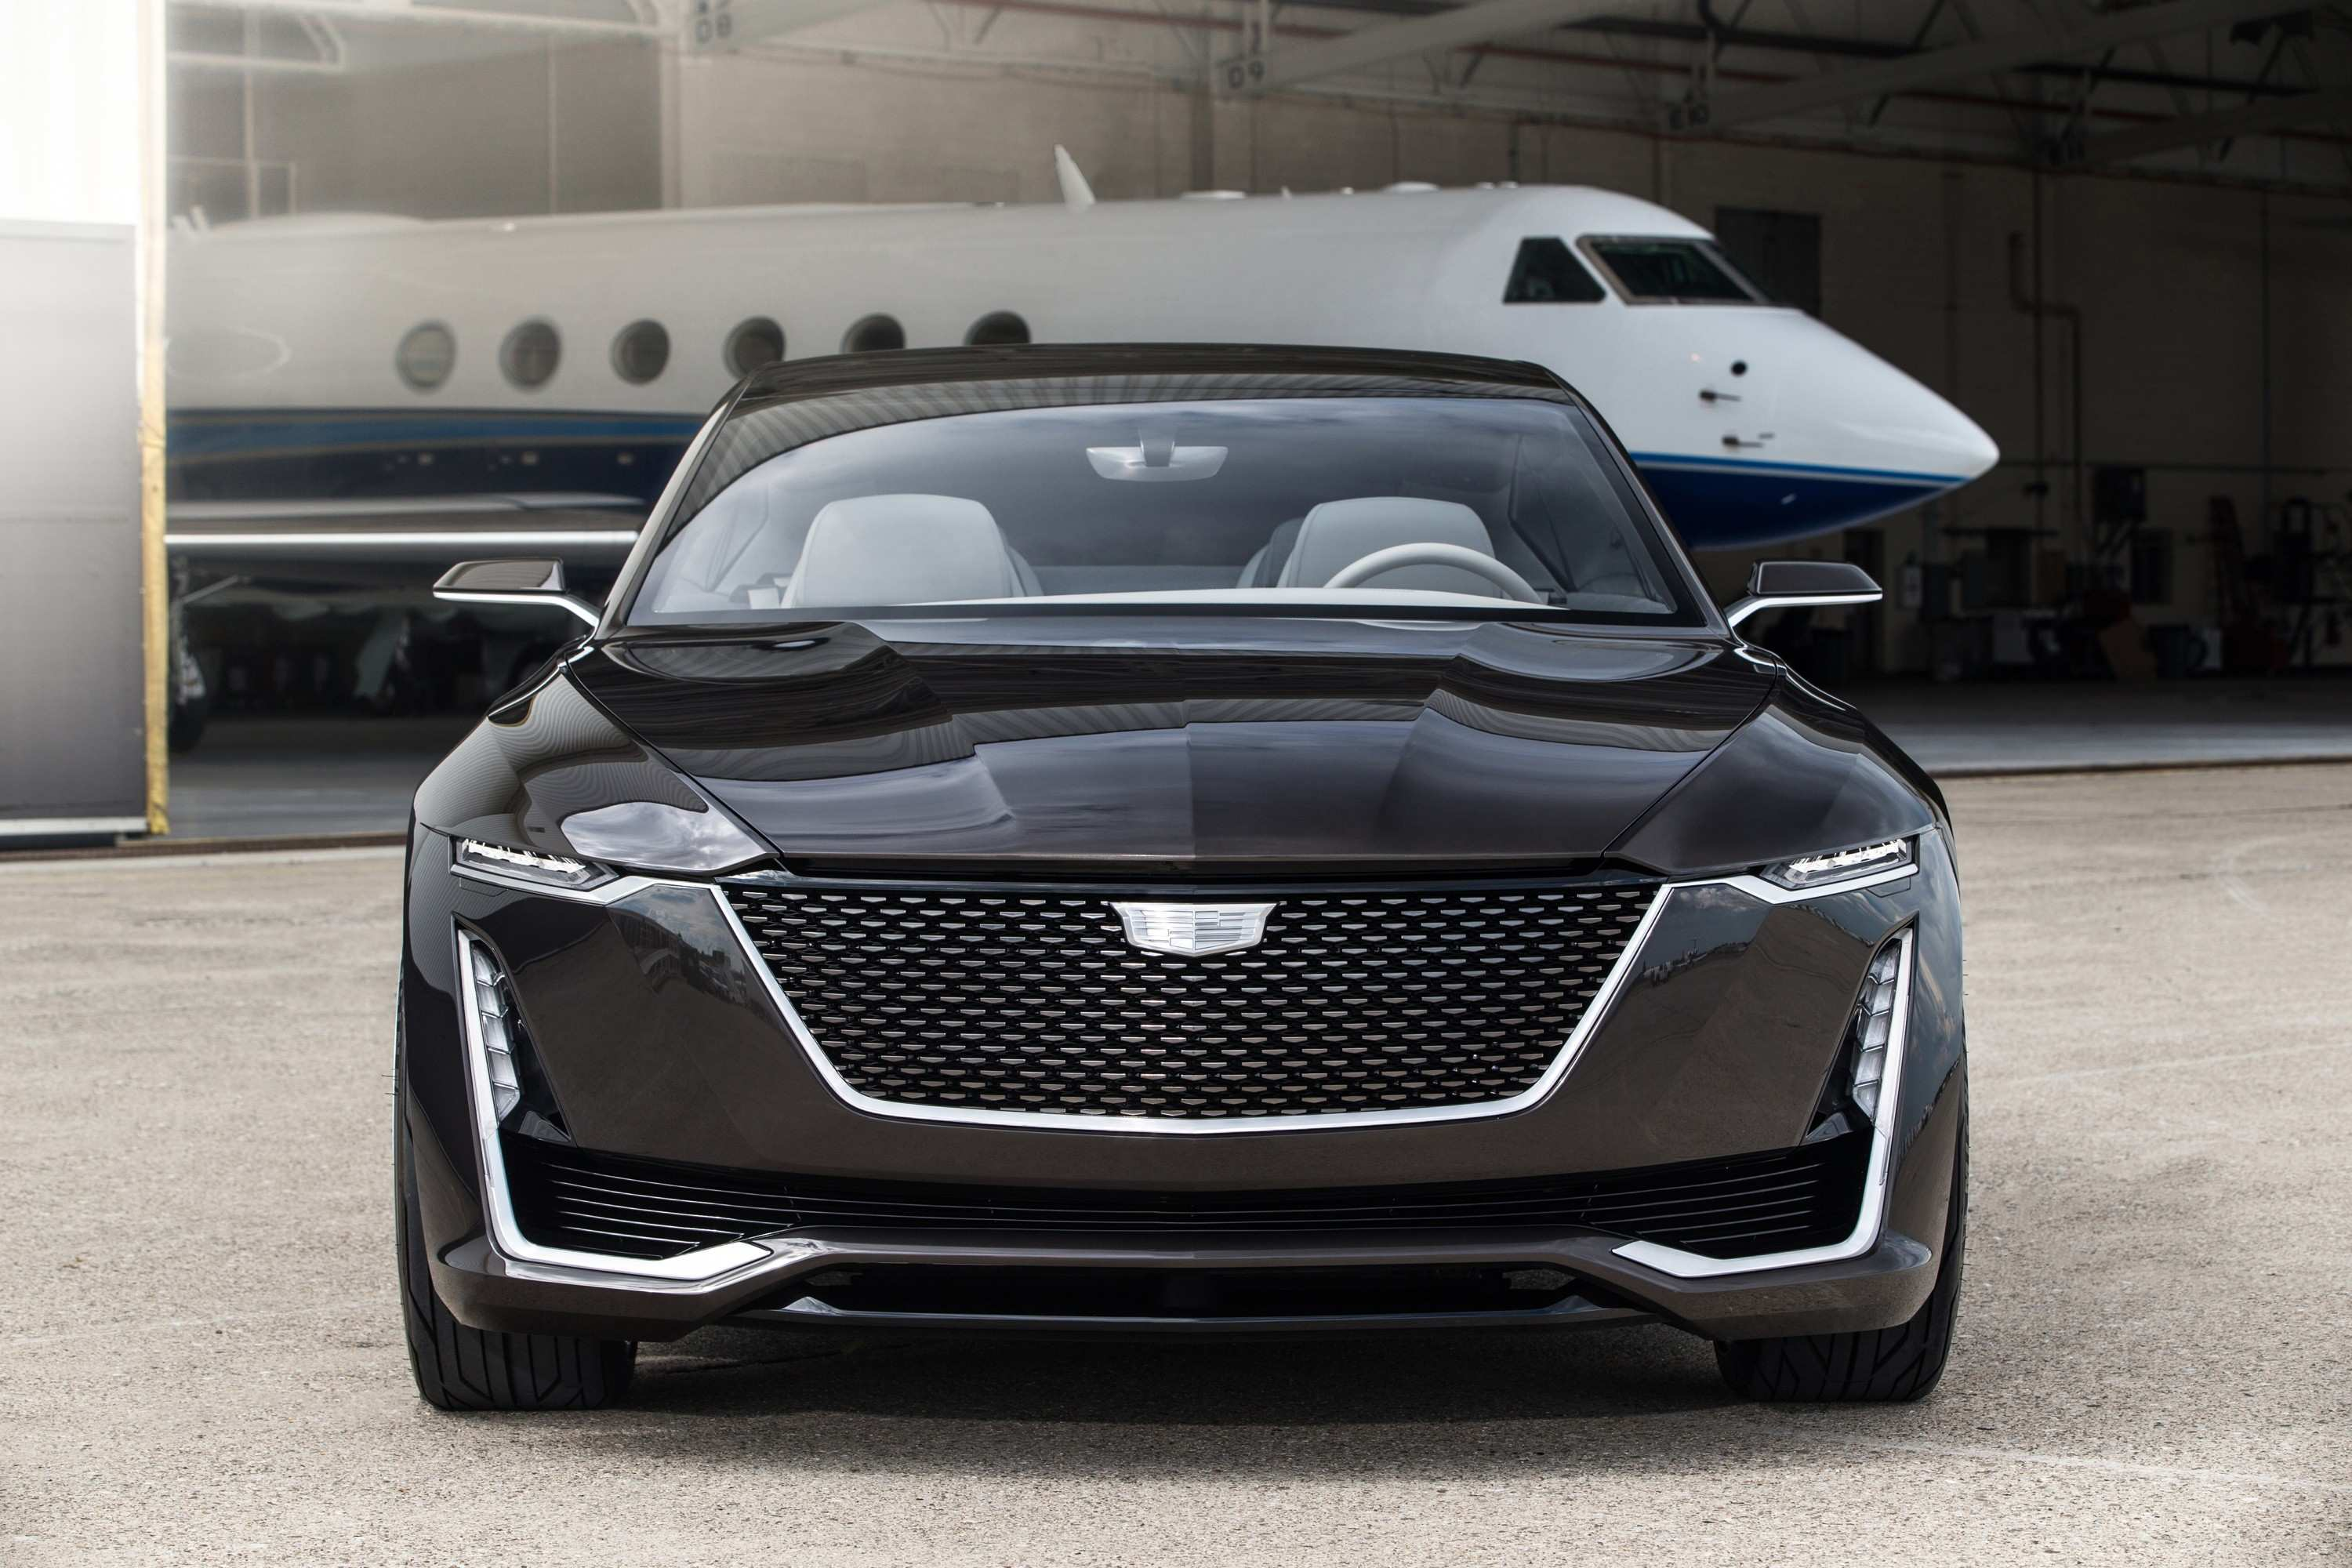 53 Best 2020 Cadillac Sports Car Research New